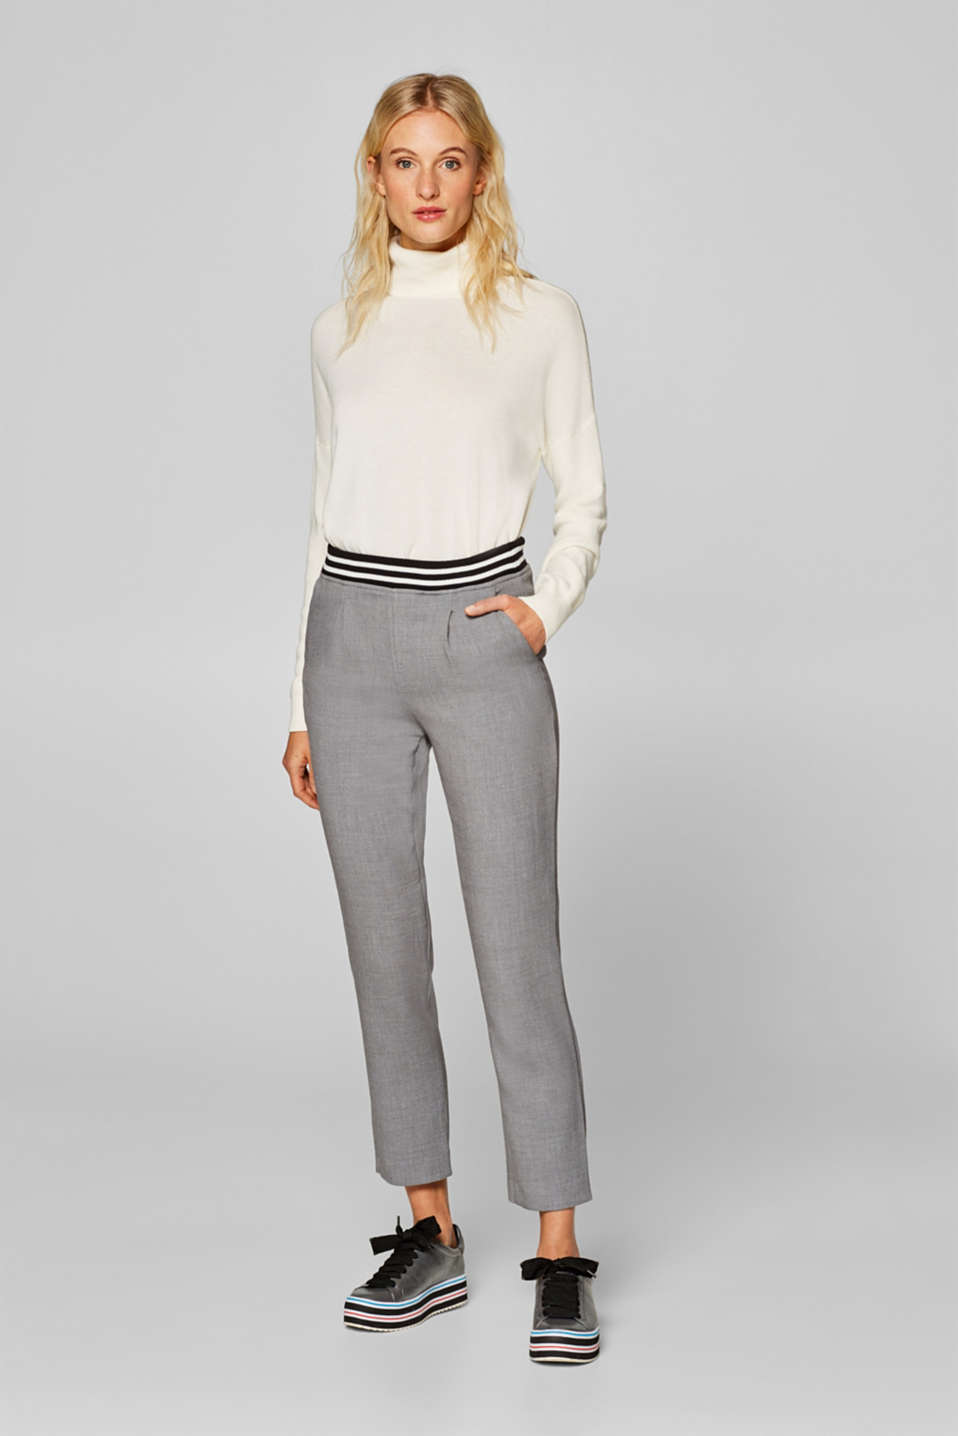 Esprit - Tracksuit-style trousers with an elasticated, ribbed waistband